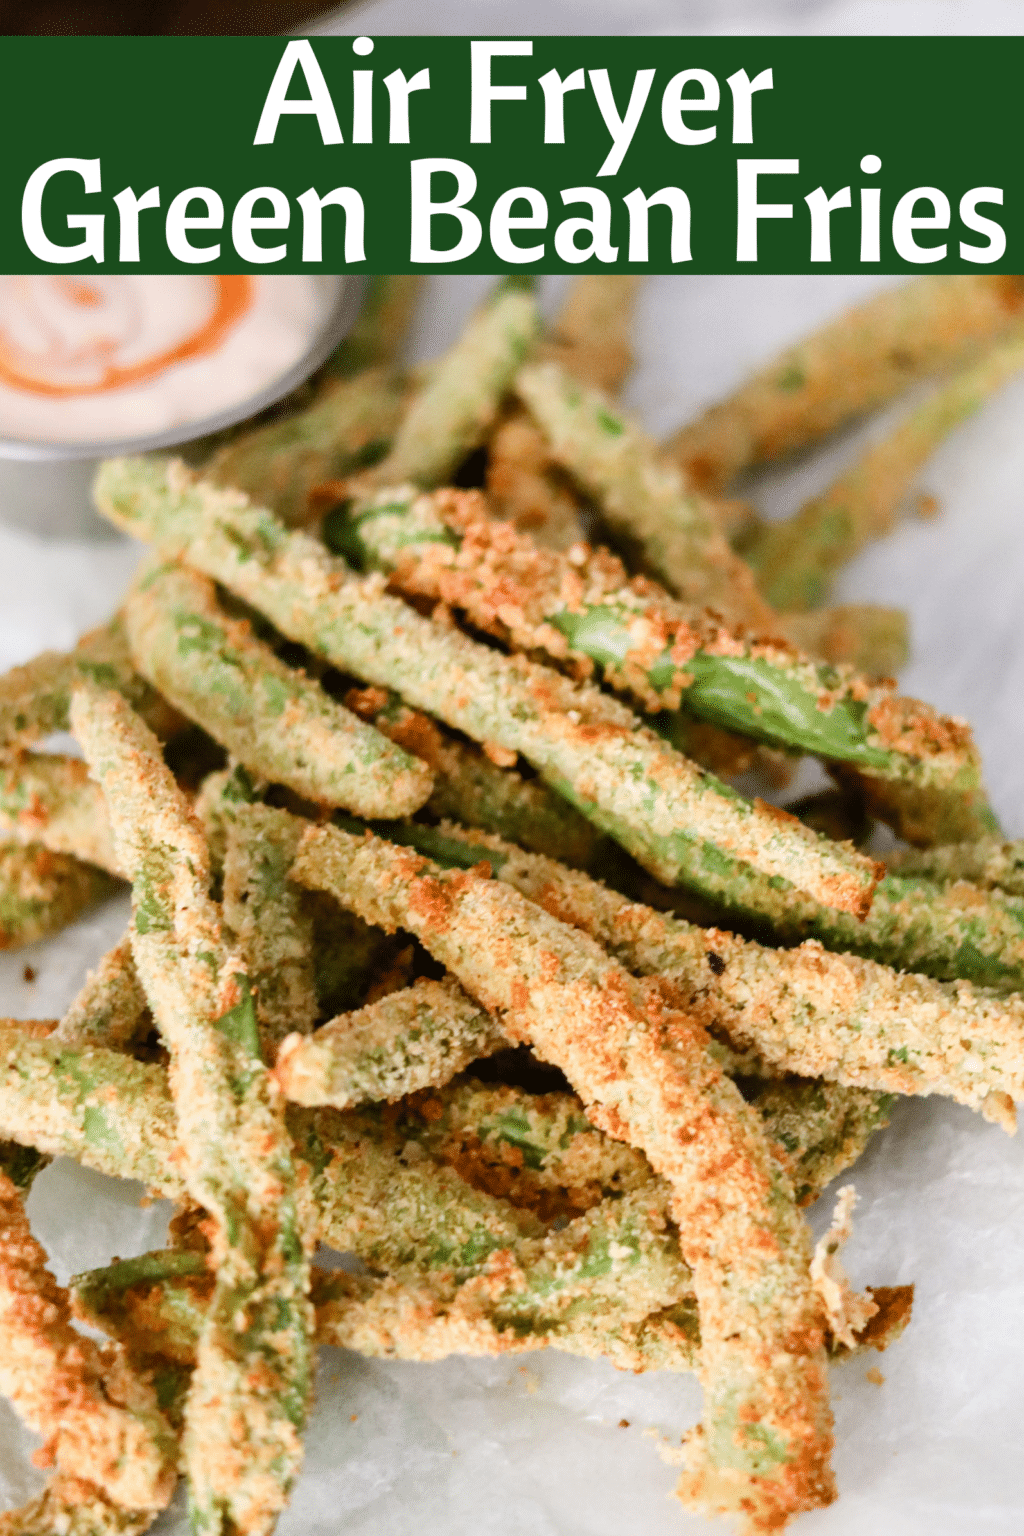 Air Fryer Green Bean Fries No Oil Recipe Domestic Superhero